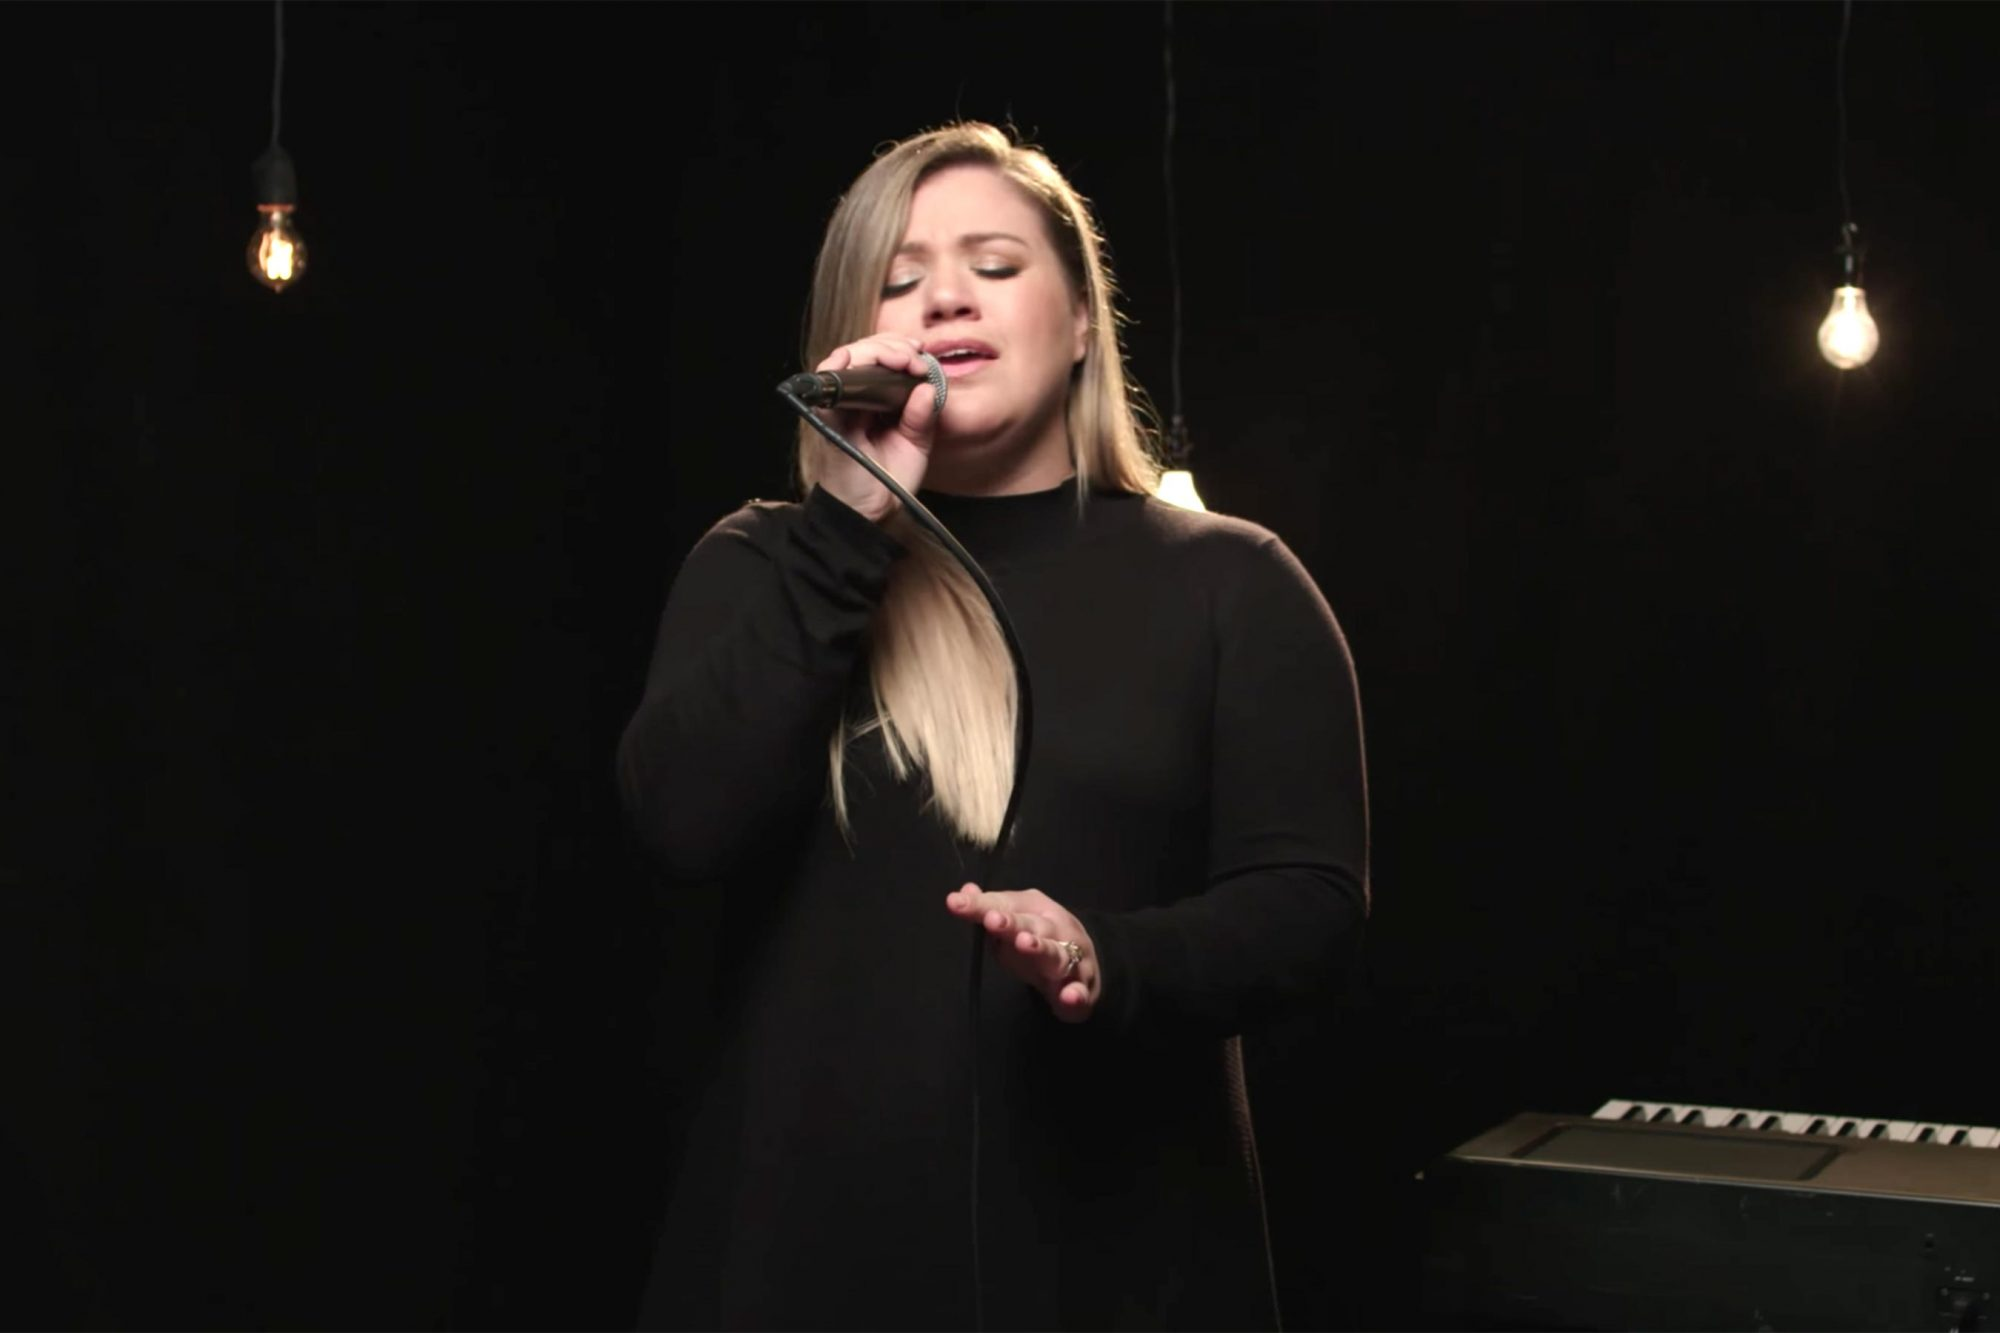 Kelly-Clarkson-It's-Quiet-Uptown-from-Hamilton